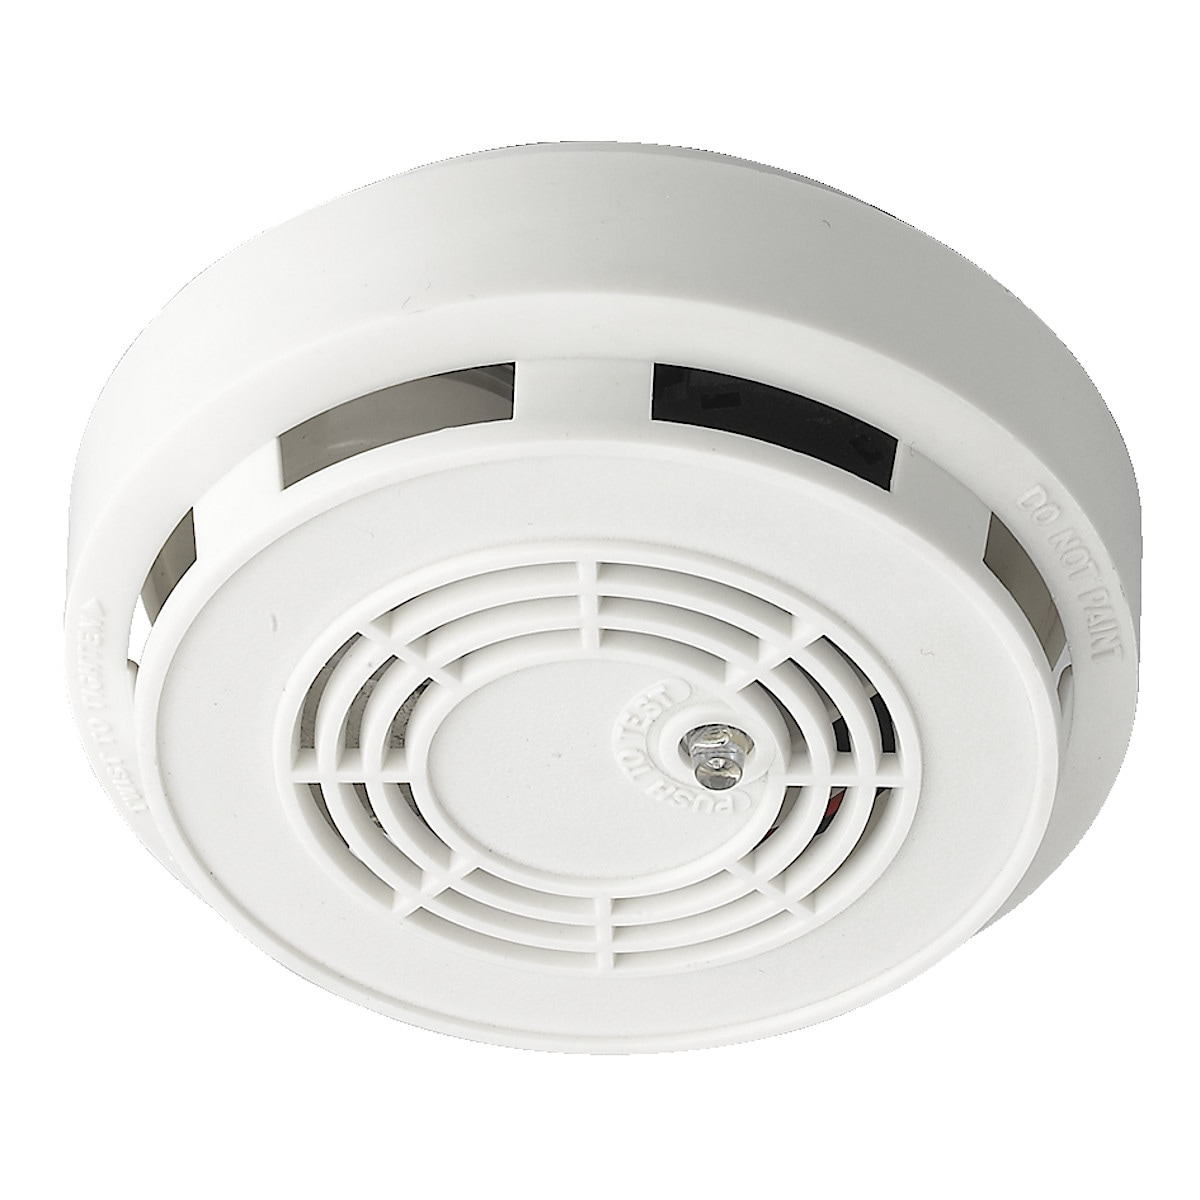 Deltronic D-1211 Combination Smoke Detector